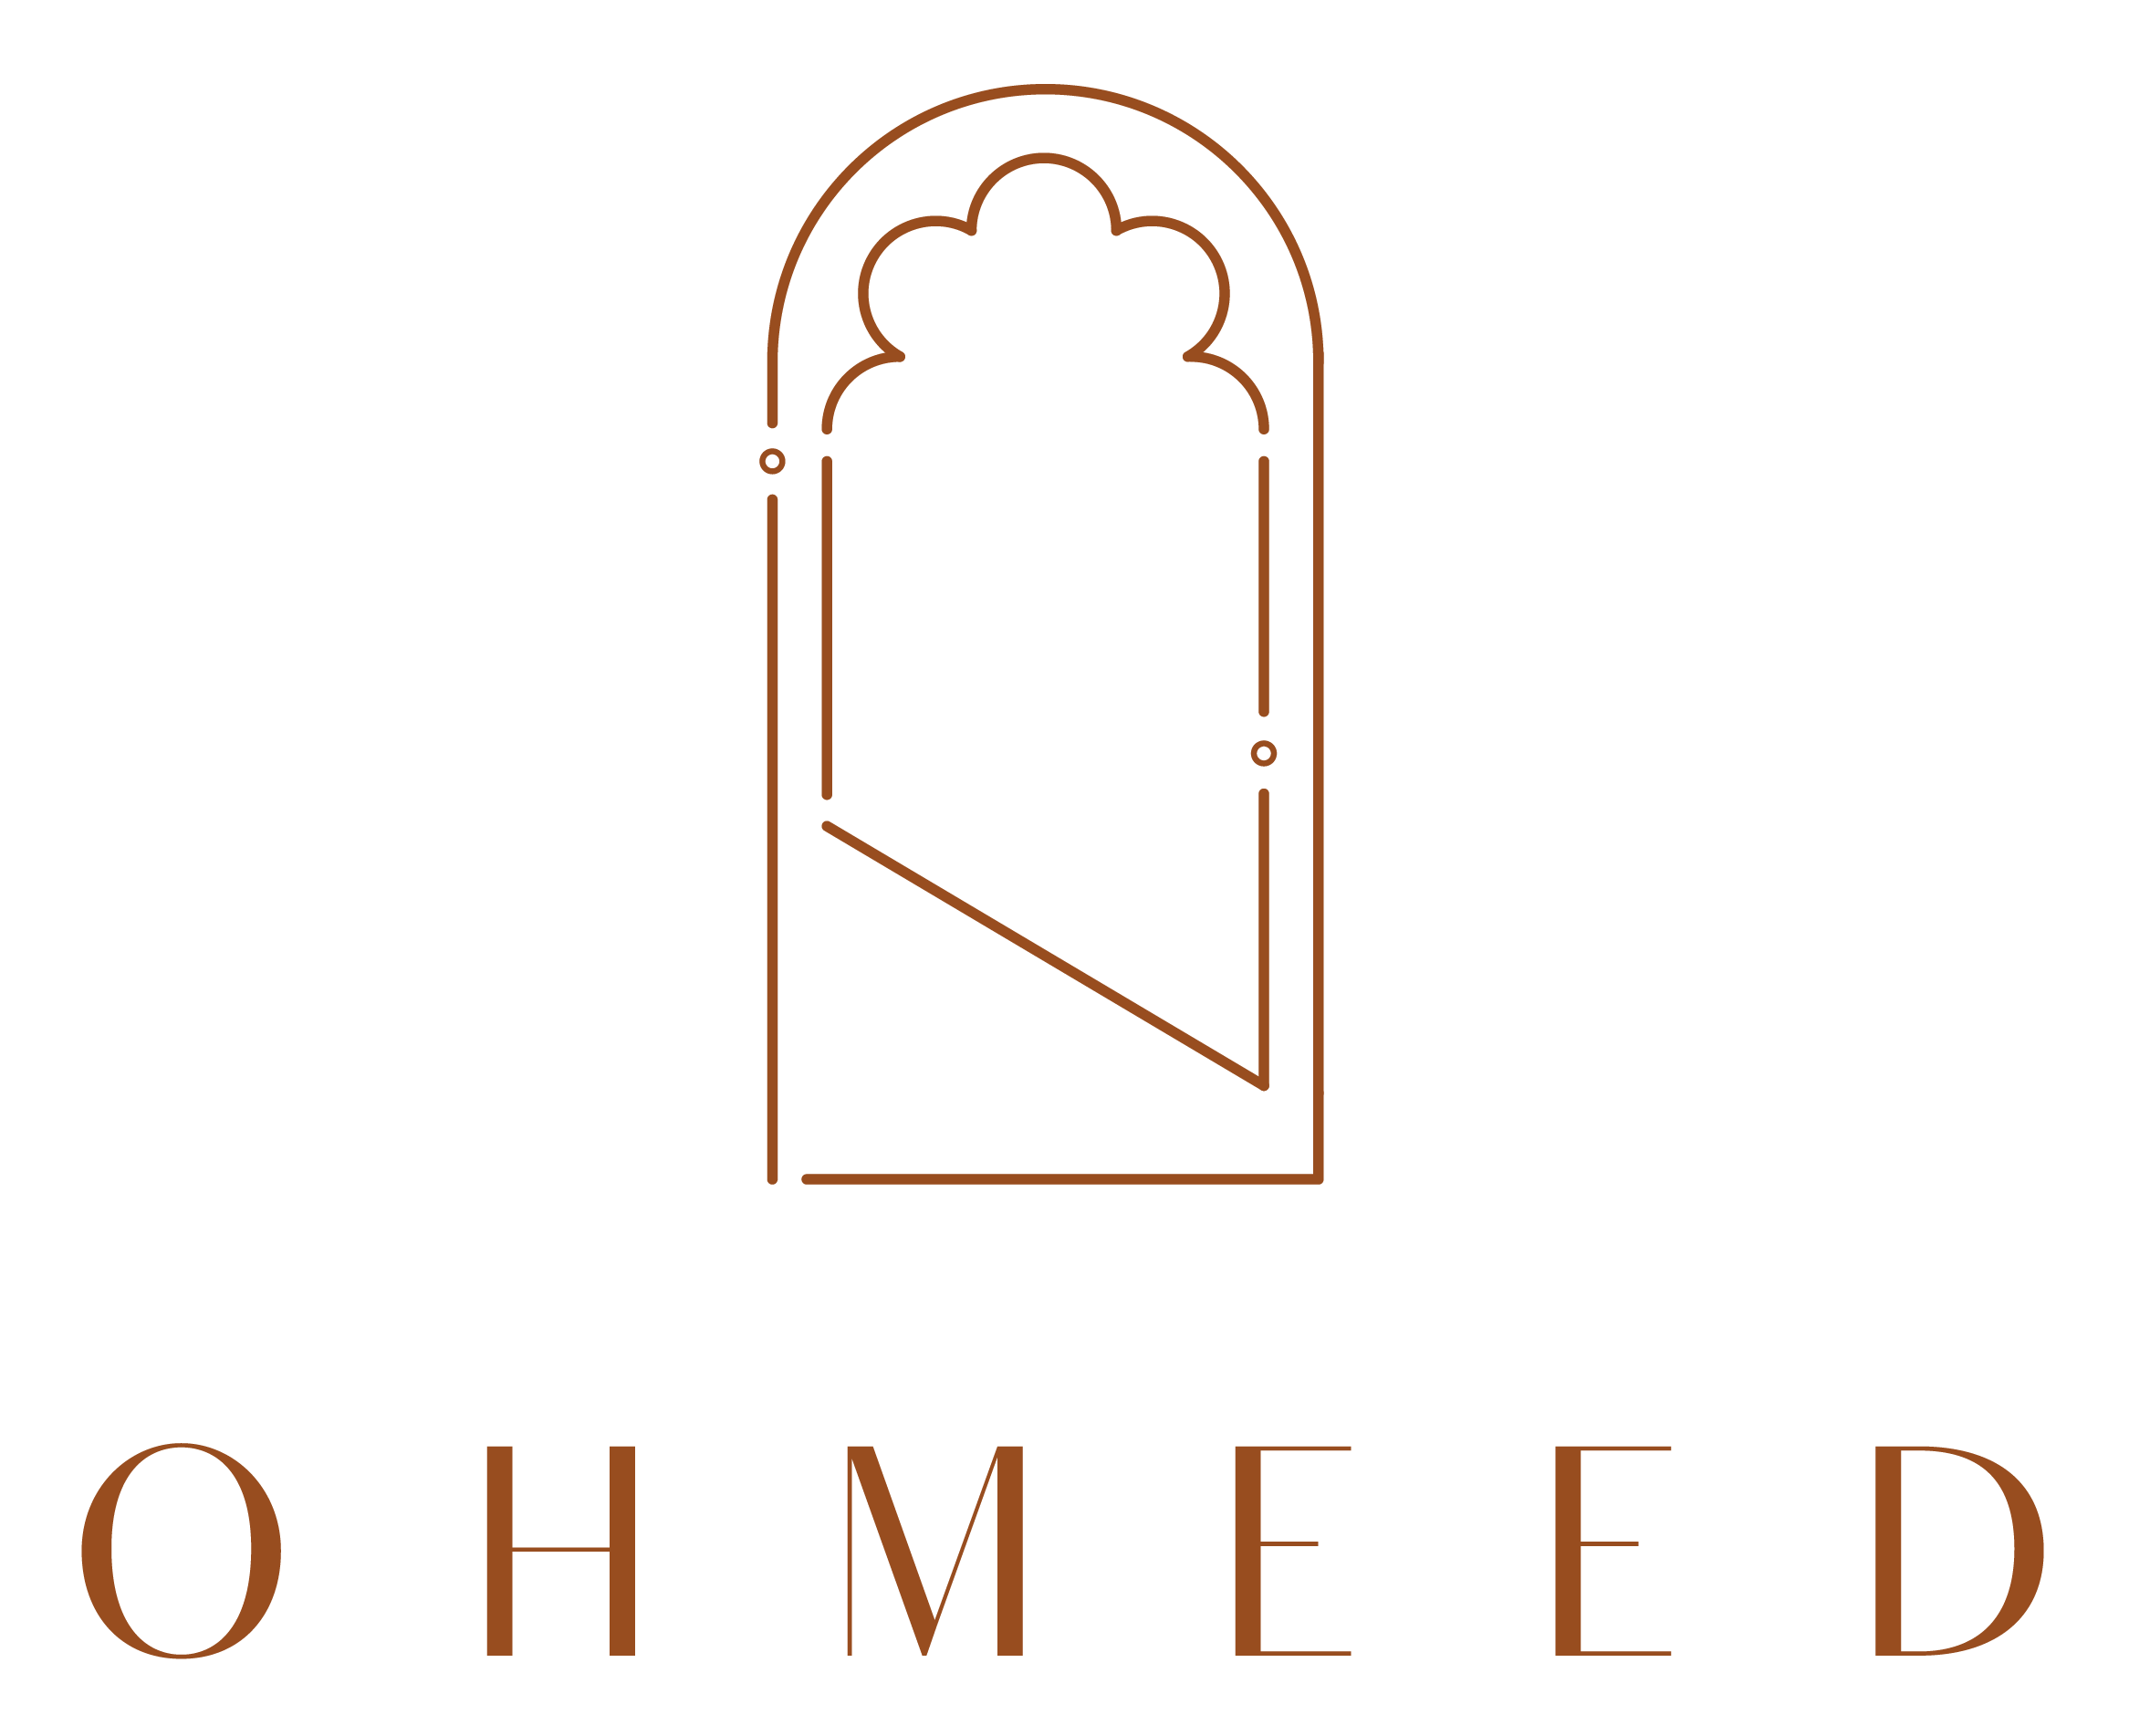 Ohmeed_LOGO_Transparent-10.png